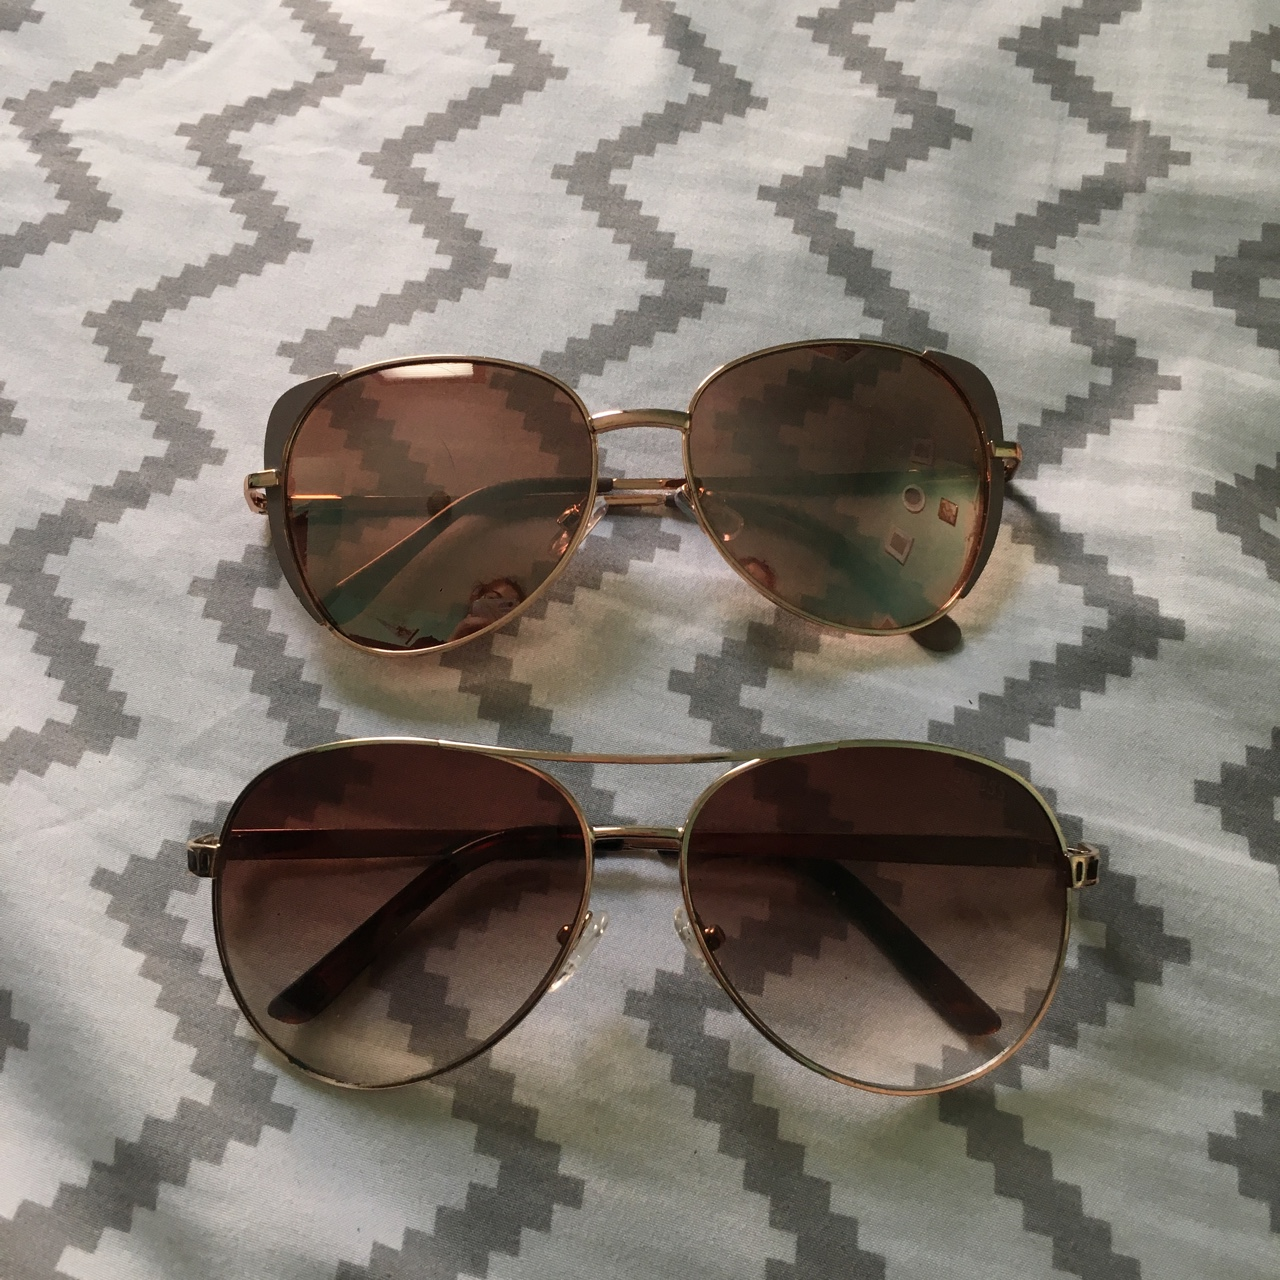 45e75b1d3baa4 Rose gold glasses   guess glasses bundle - Depop